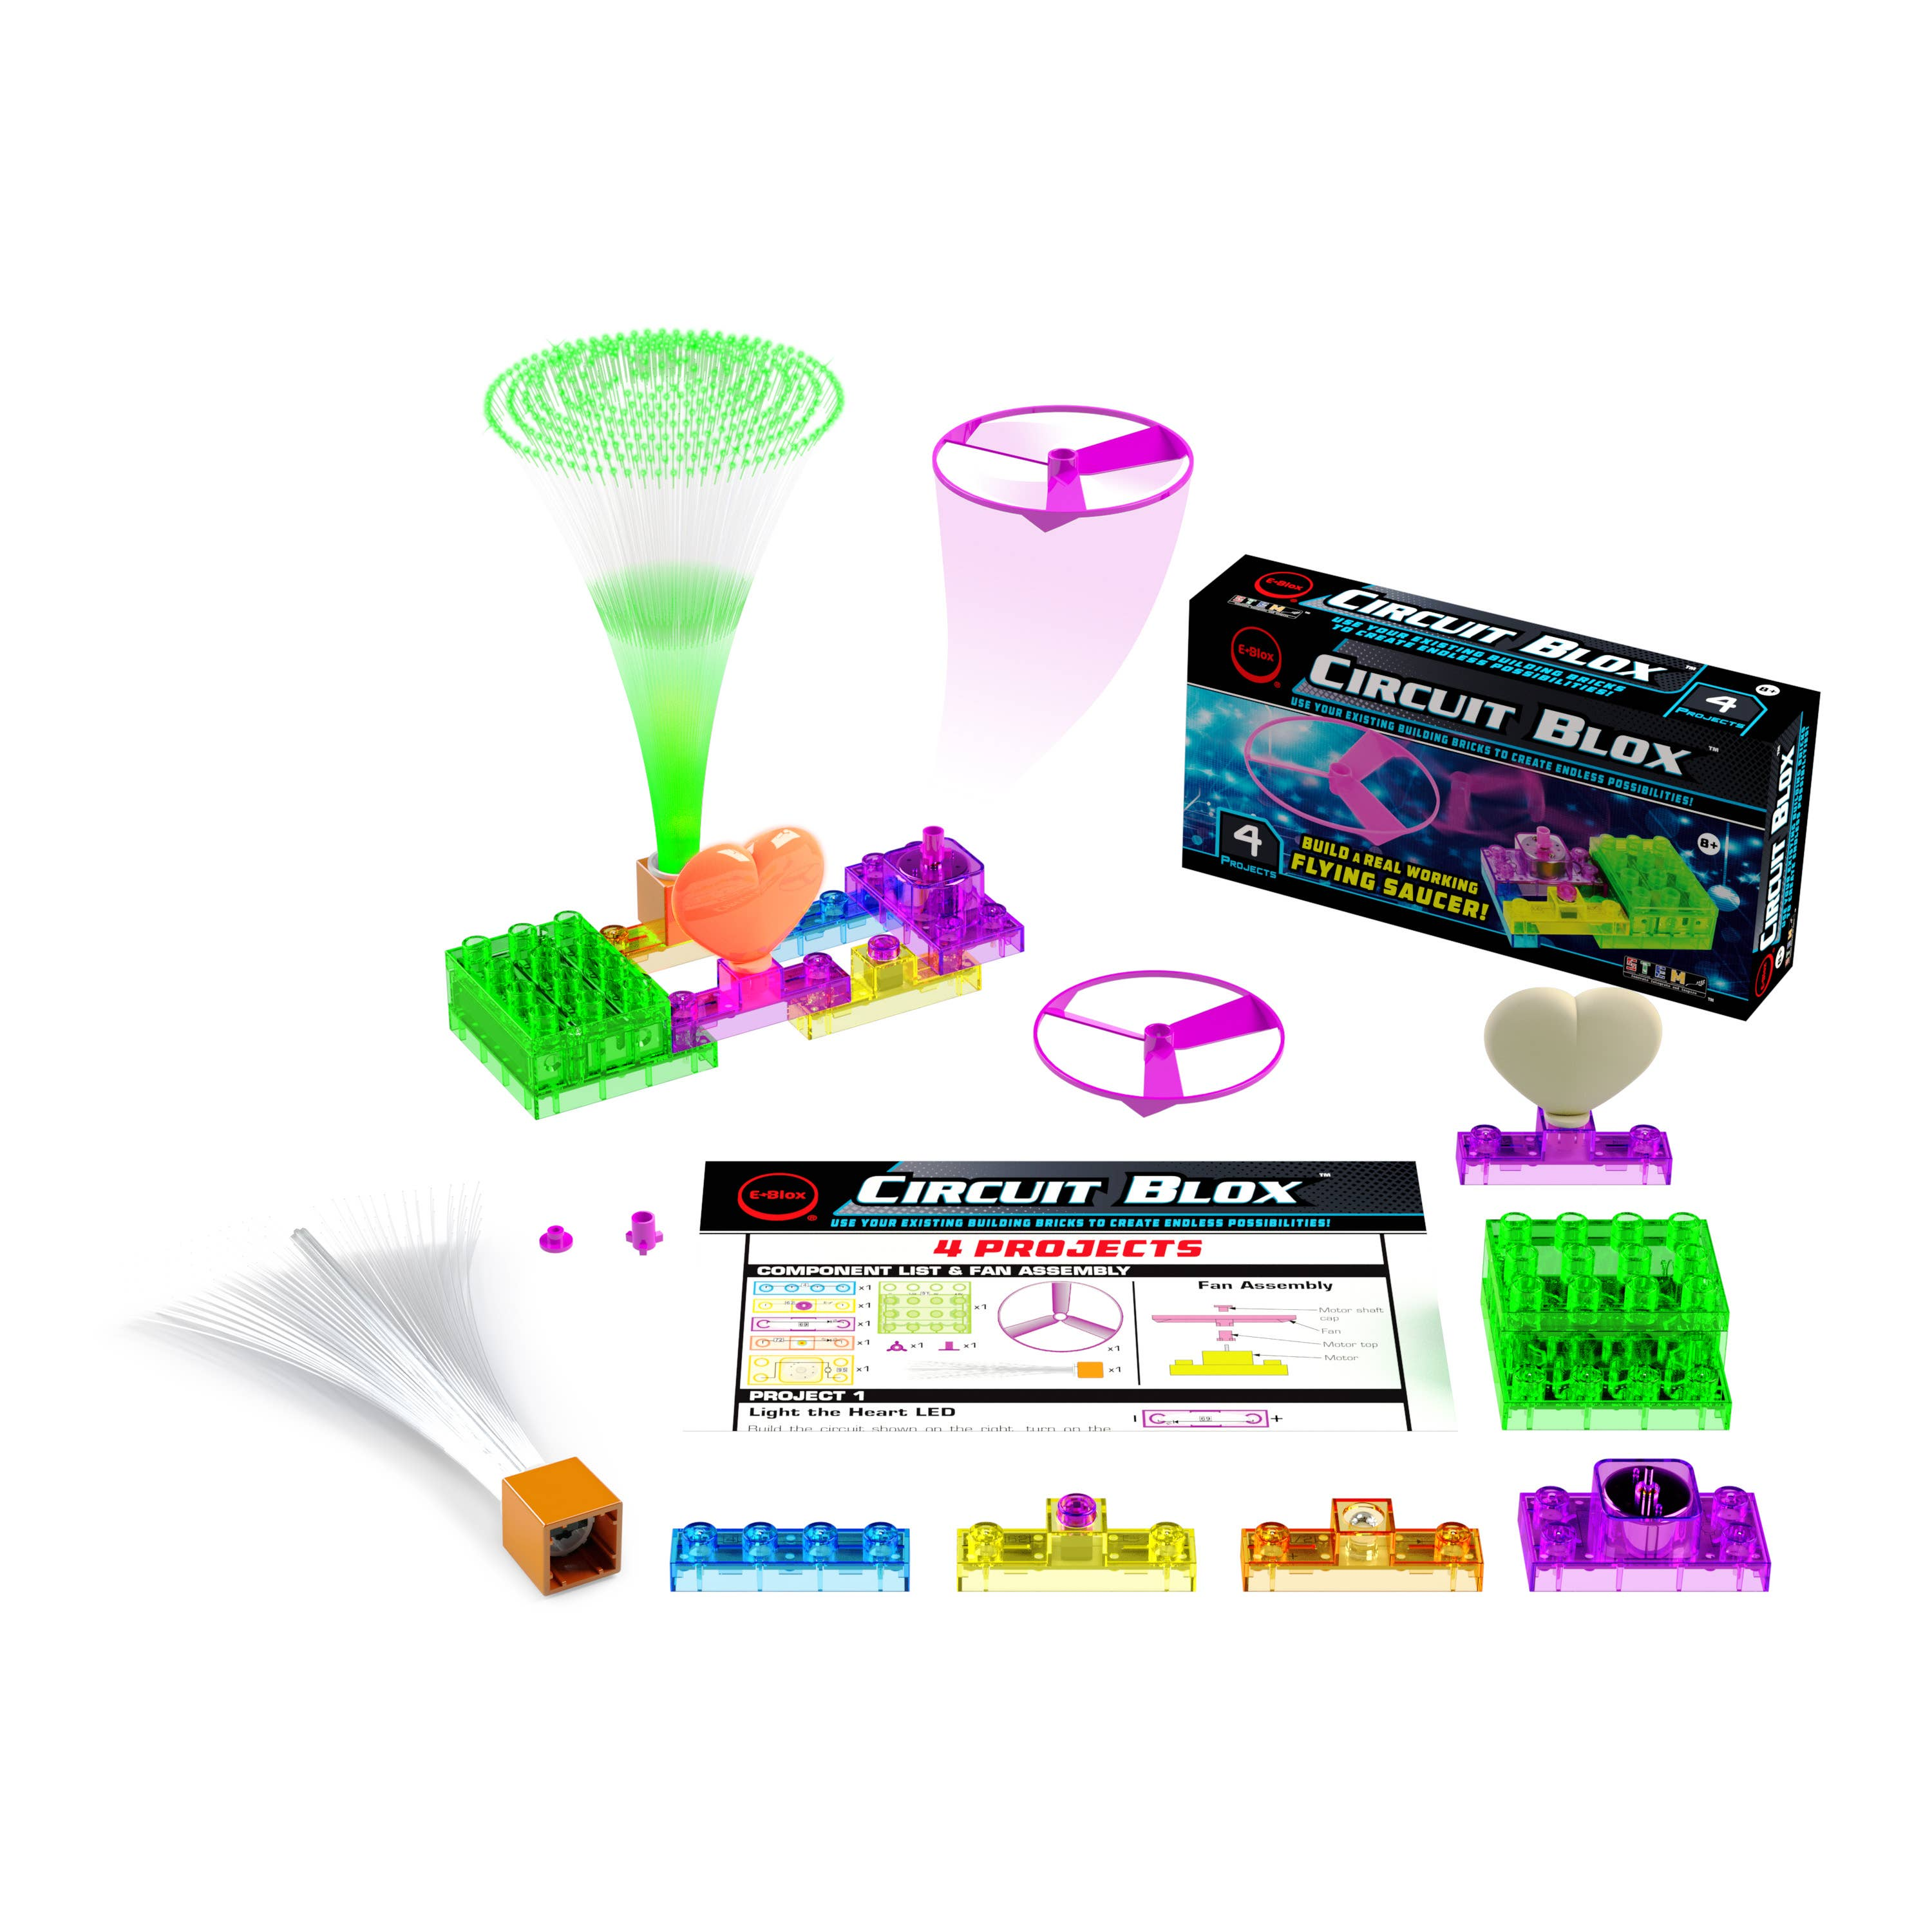 Circuit Blox 4 Projects - Build Your Own Flying Saucer Kit   Trada Marketplace